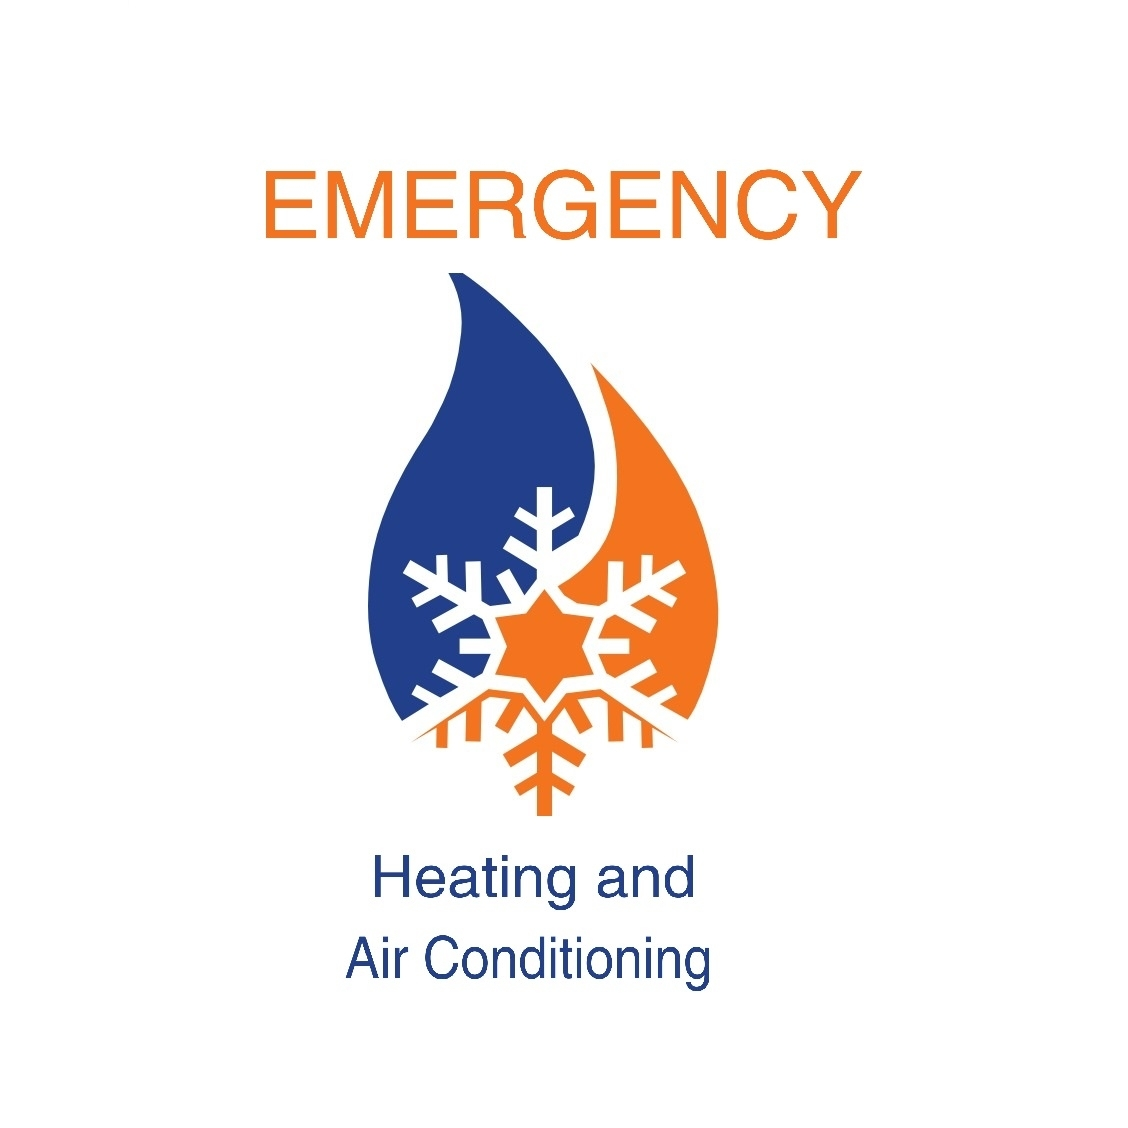 Heating And Air : Emergency heating and air conditioning in cumming ga